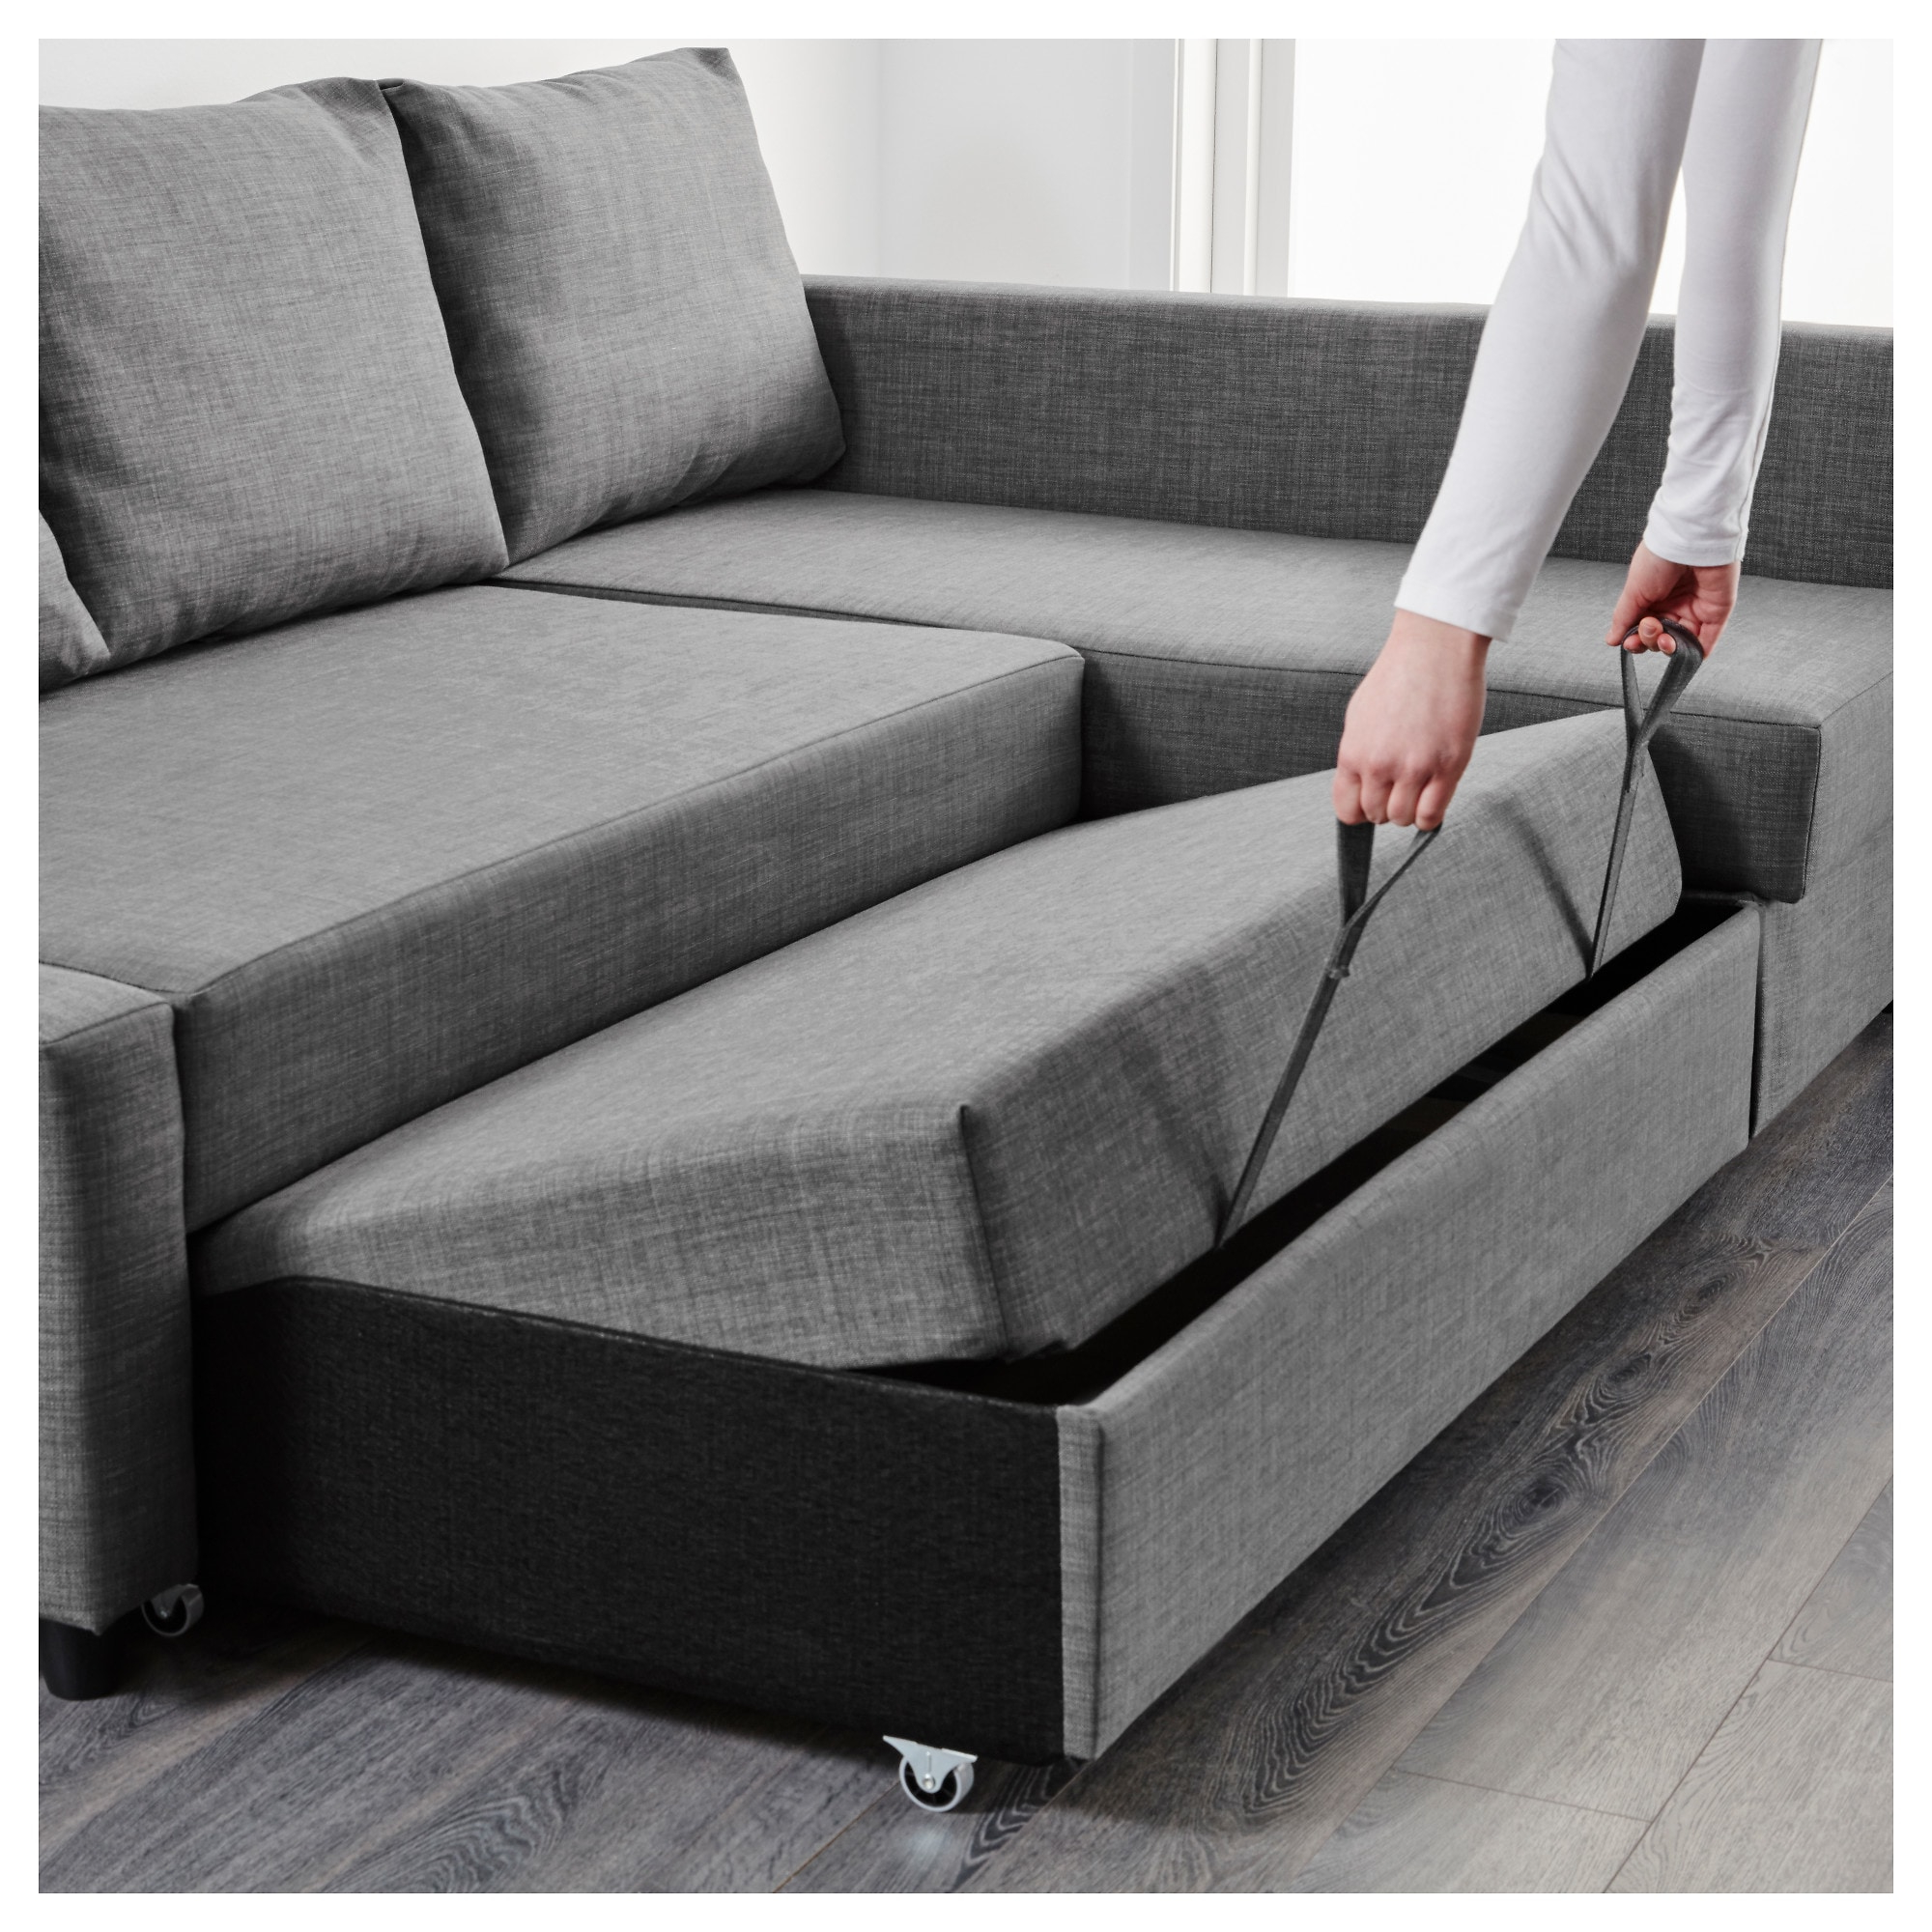 Sofa Friheten Y7du Friheten Corner sofa Bed with Storage Skiftebo Dark Grey Ikea